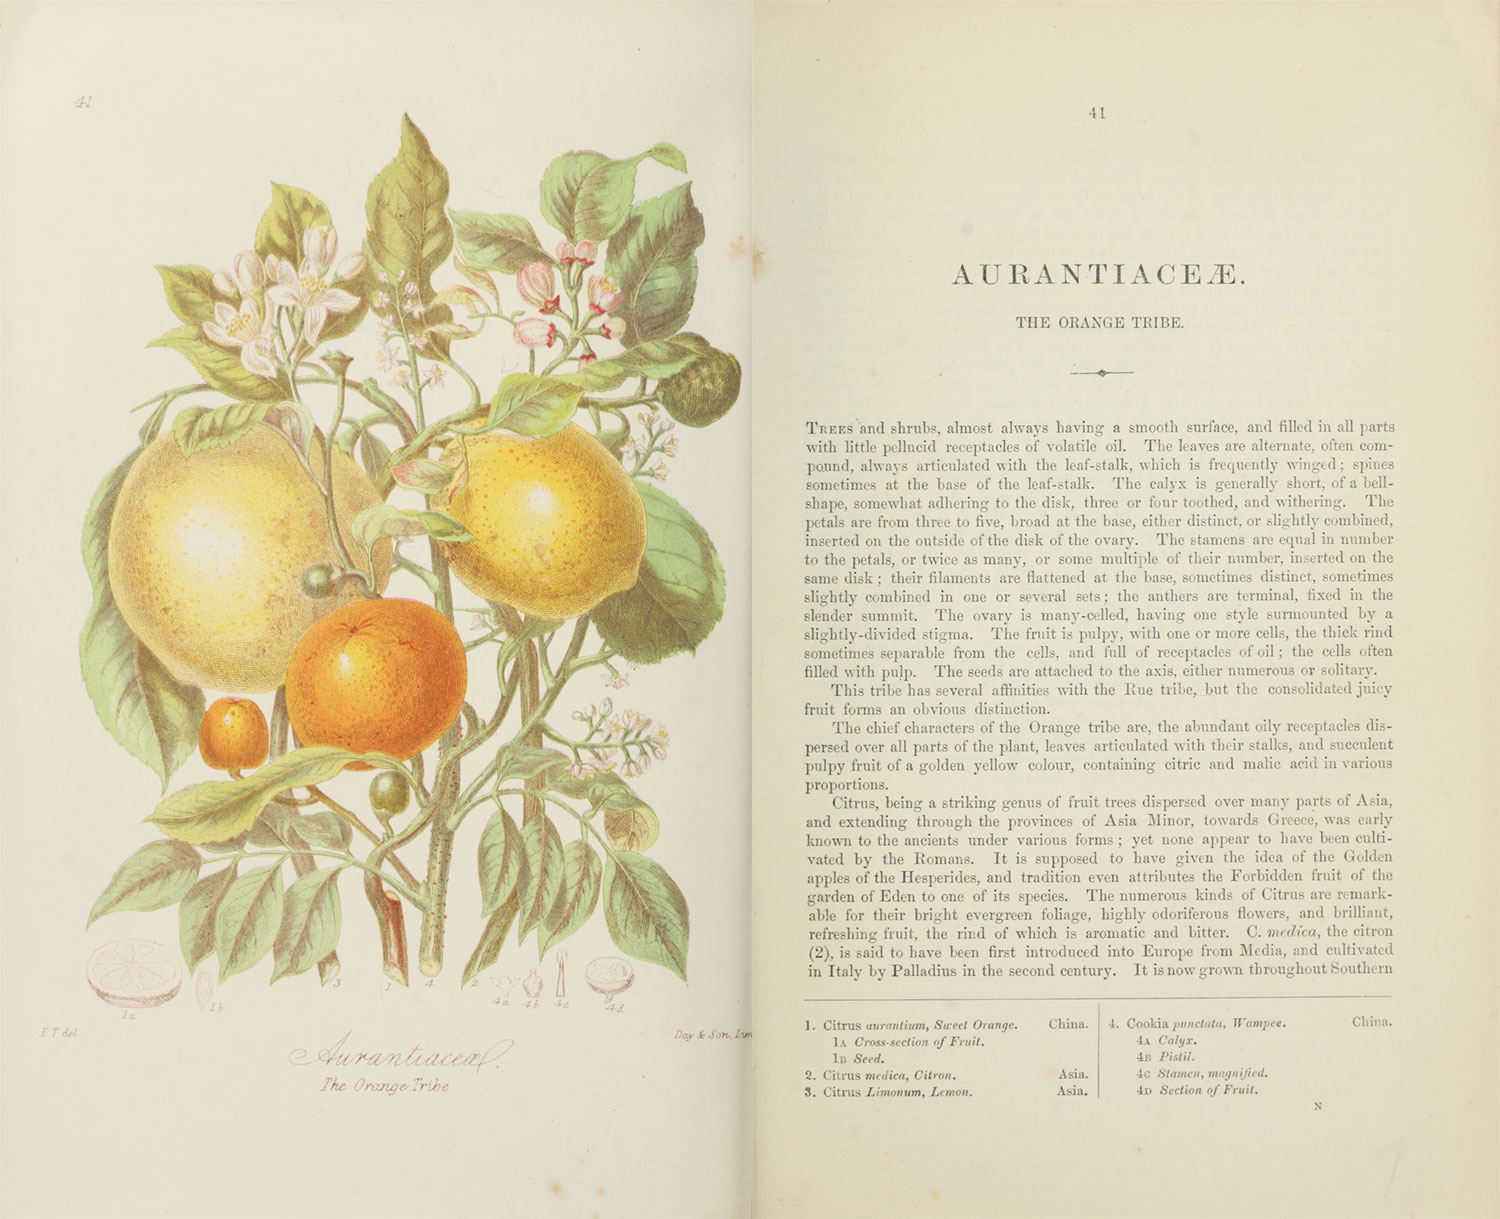 Scans of the original illustration and description of Aurantaitaceæ, the Orange Tribe